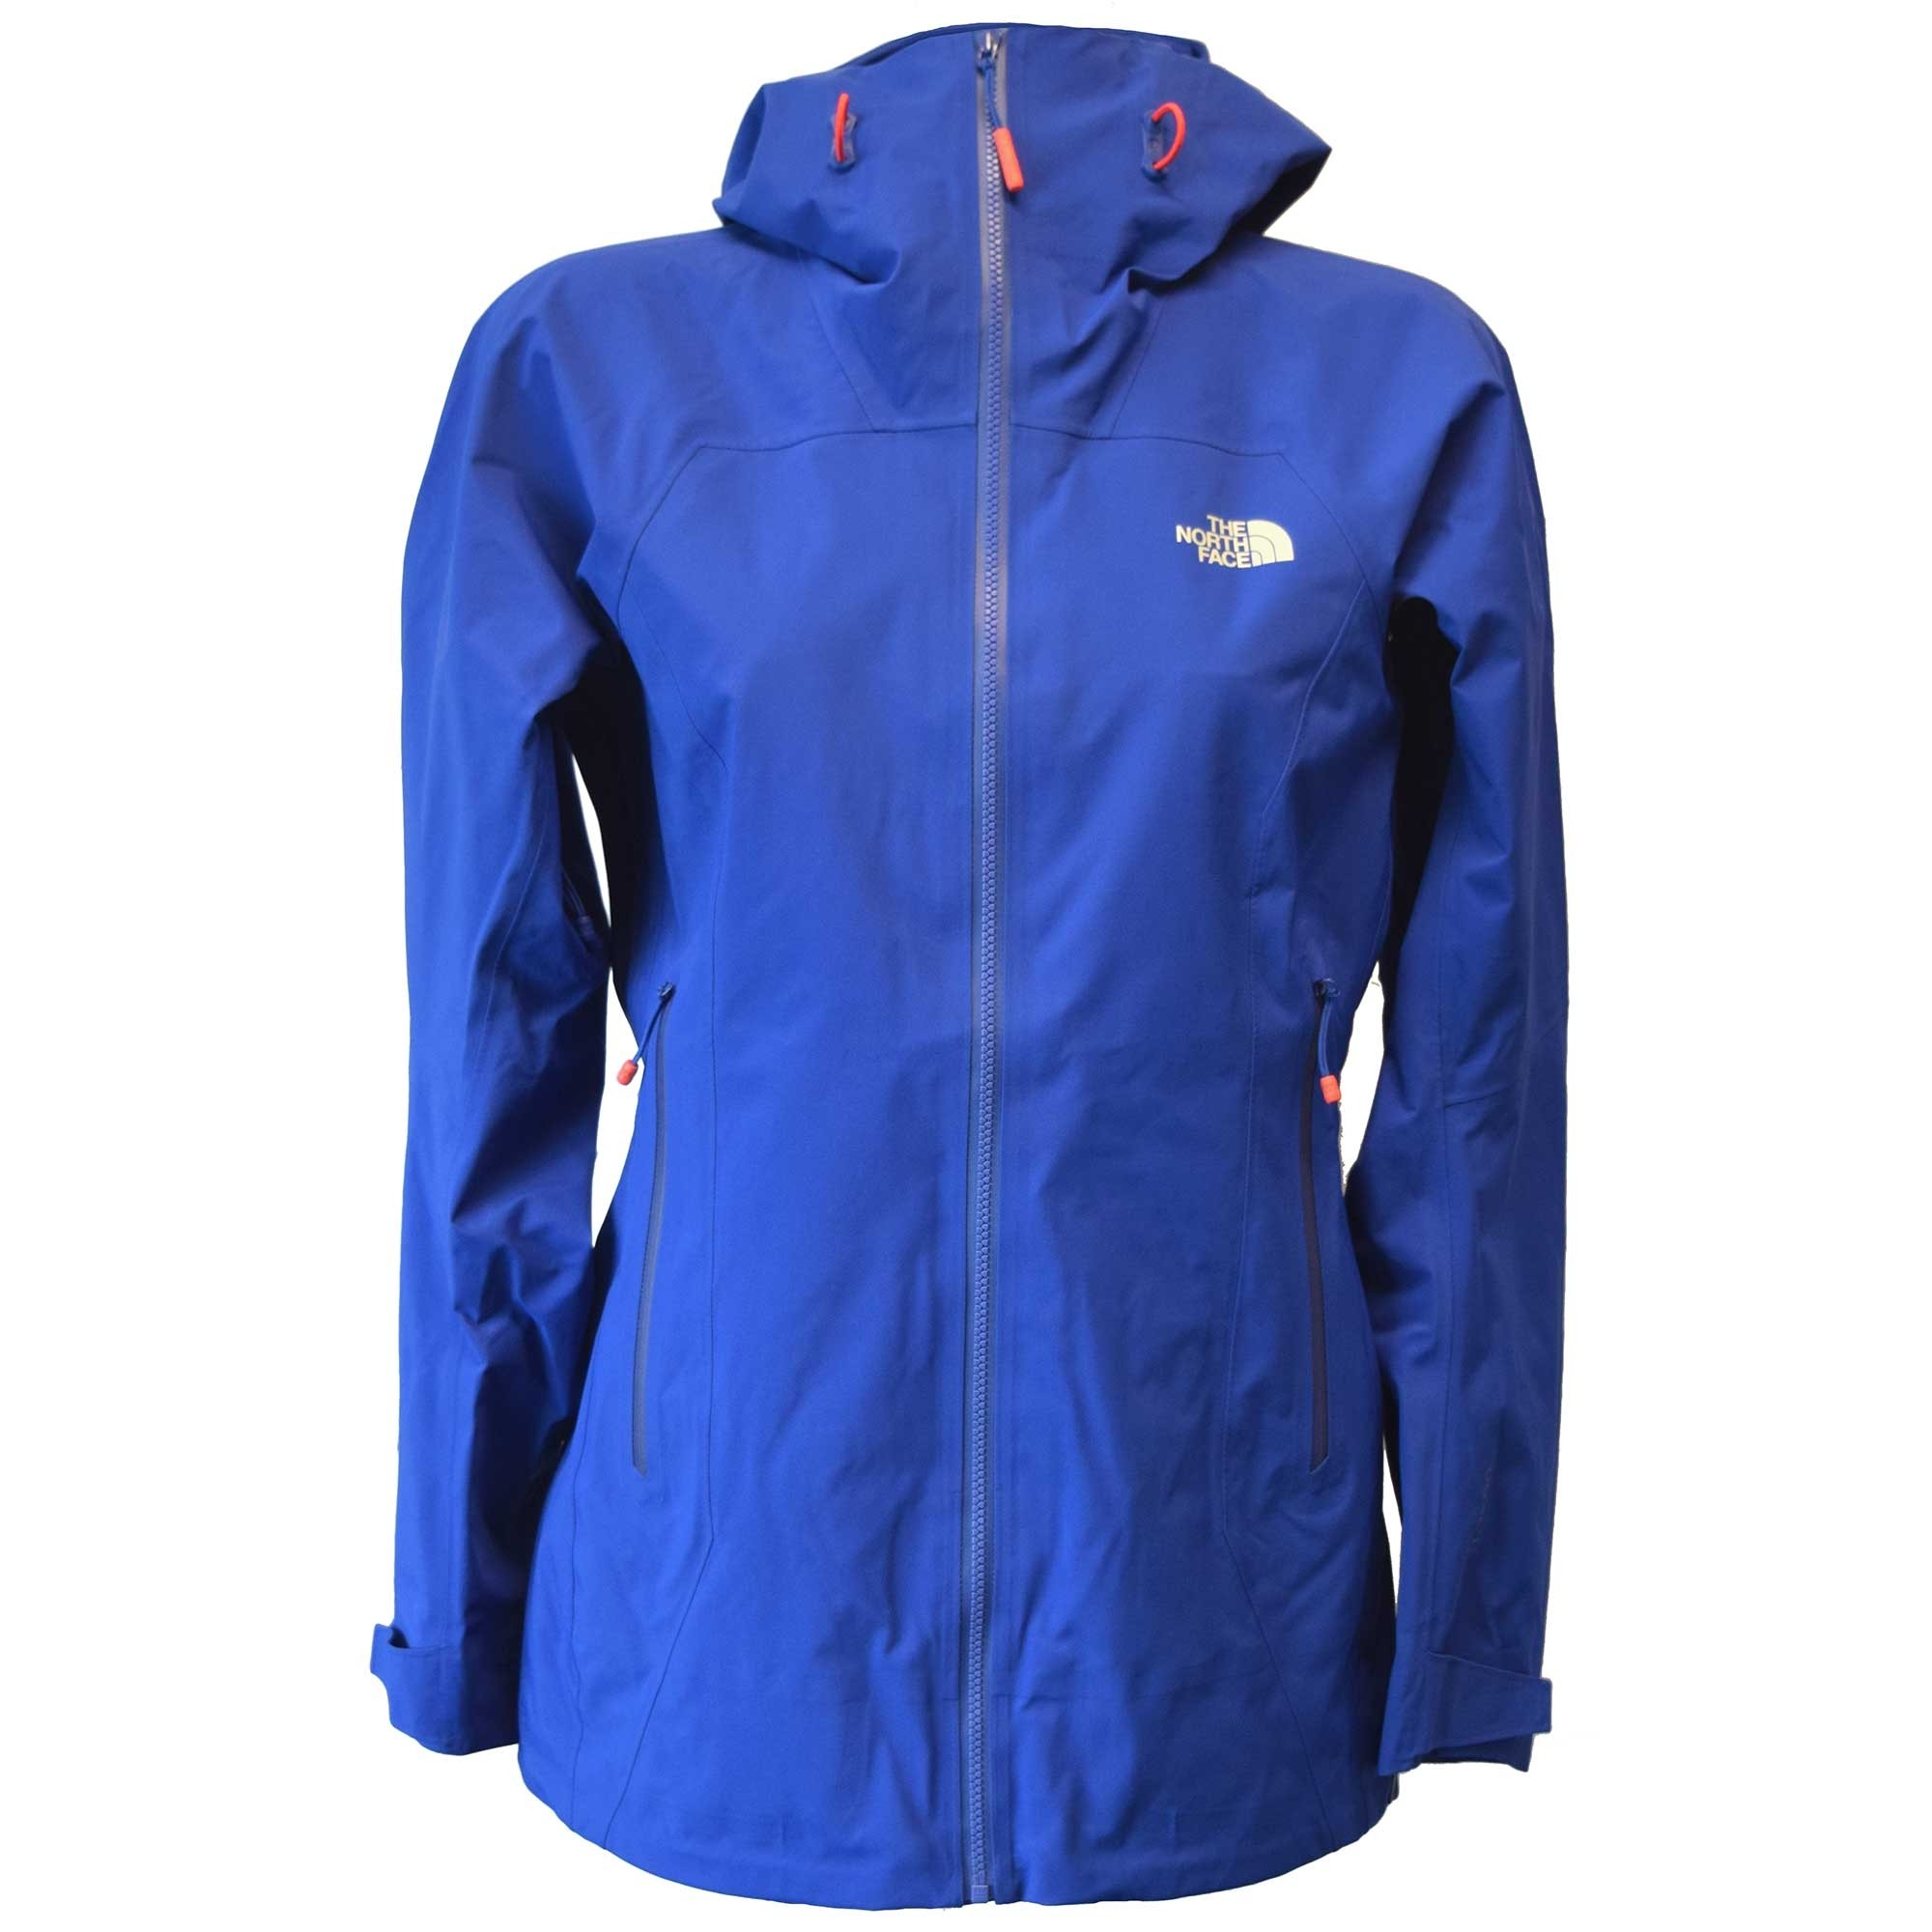 The-North-Face-Womens-Point-Five-GTX-Jacket-Marker-Blue